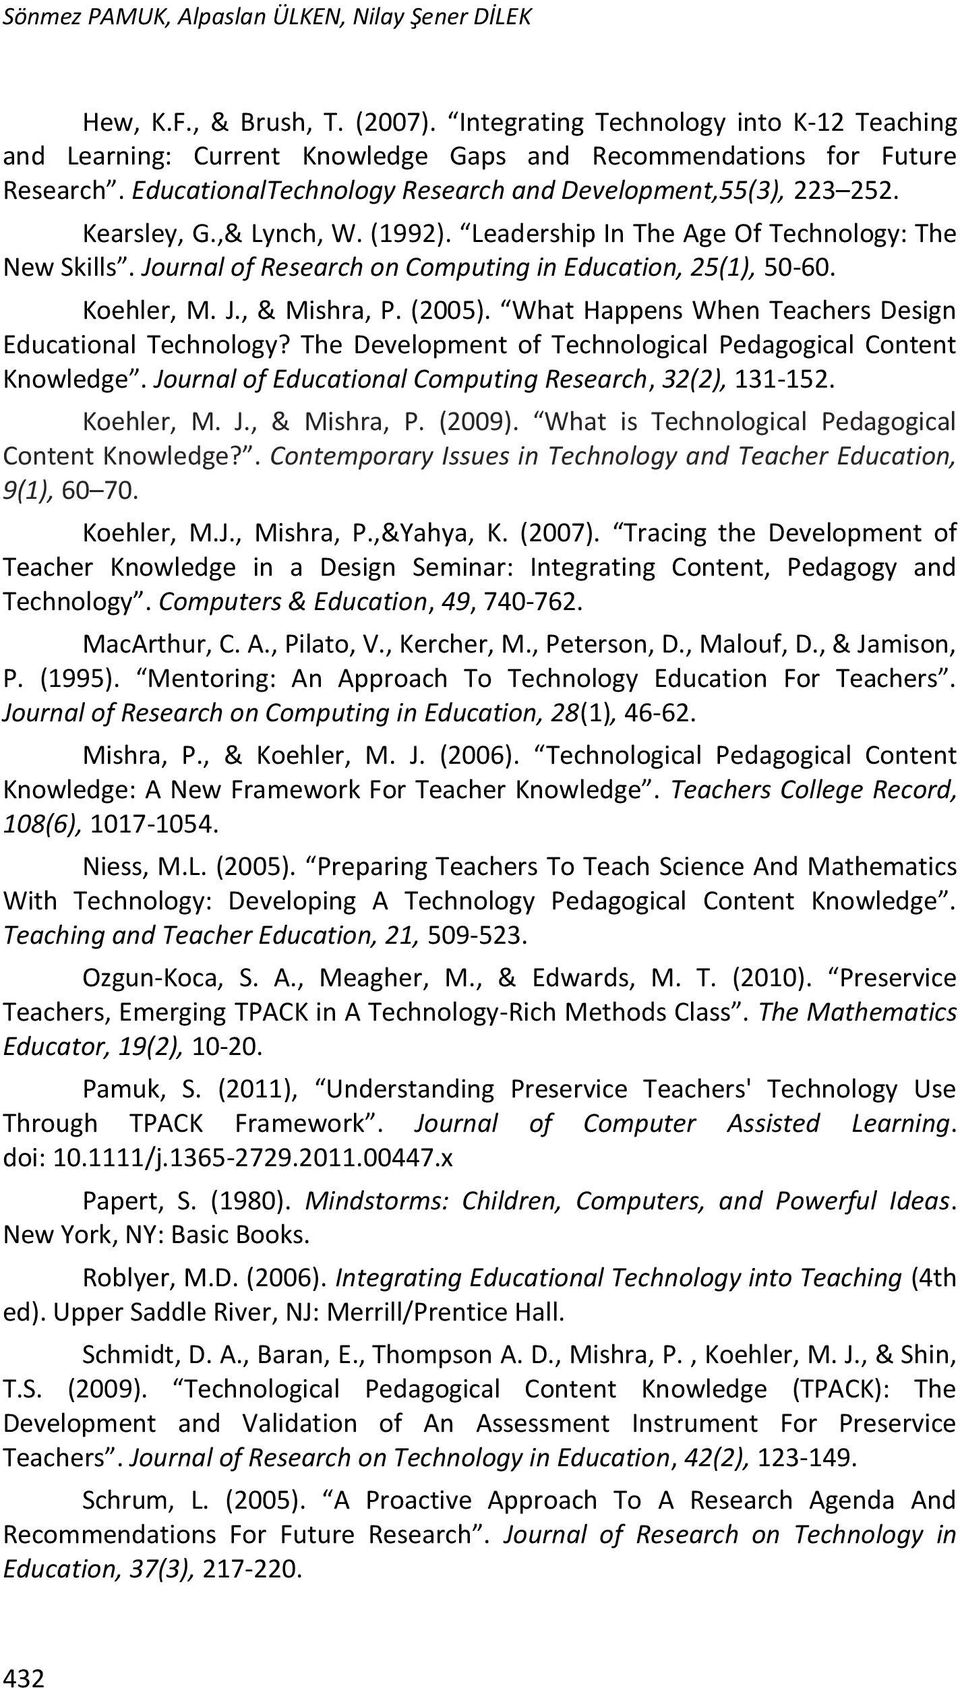 Journal of Research on Computing in Education, 25(1), 50-60. Koehler, M. J., & Mishra, P. (2005). What Happens When Teachers Design Educational Technology?